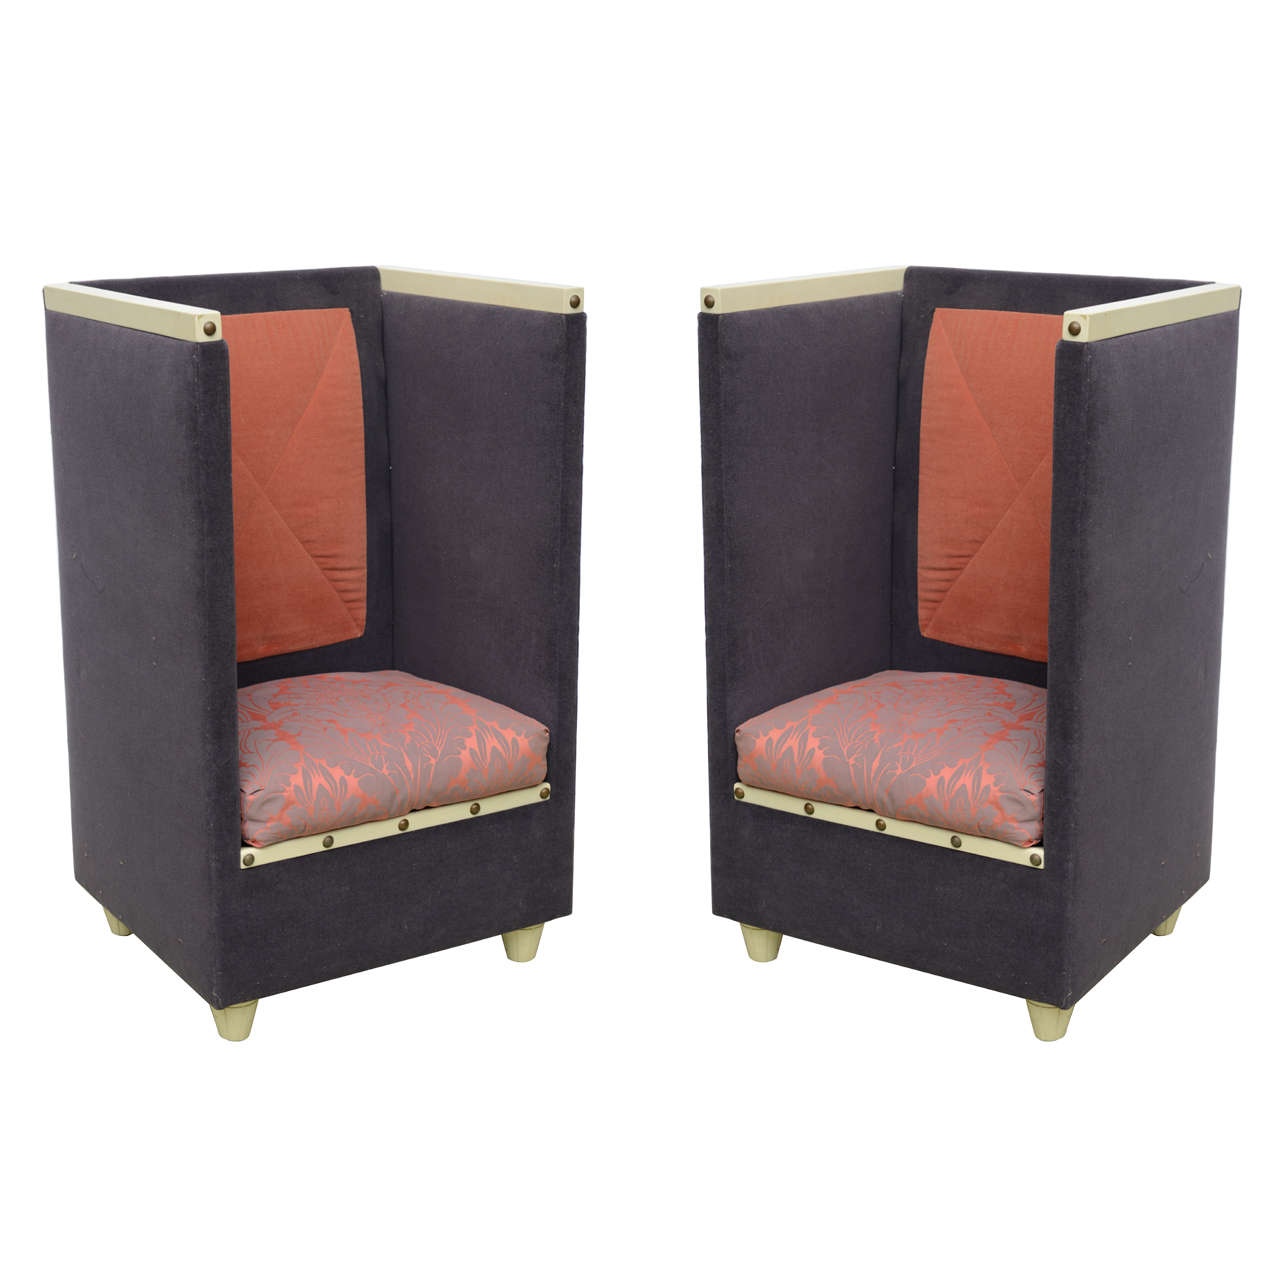 Ronn Jaffe's Limited Edition Iconic Pair Throne Chairs